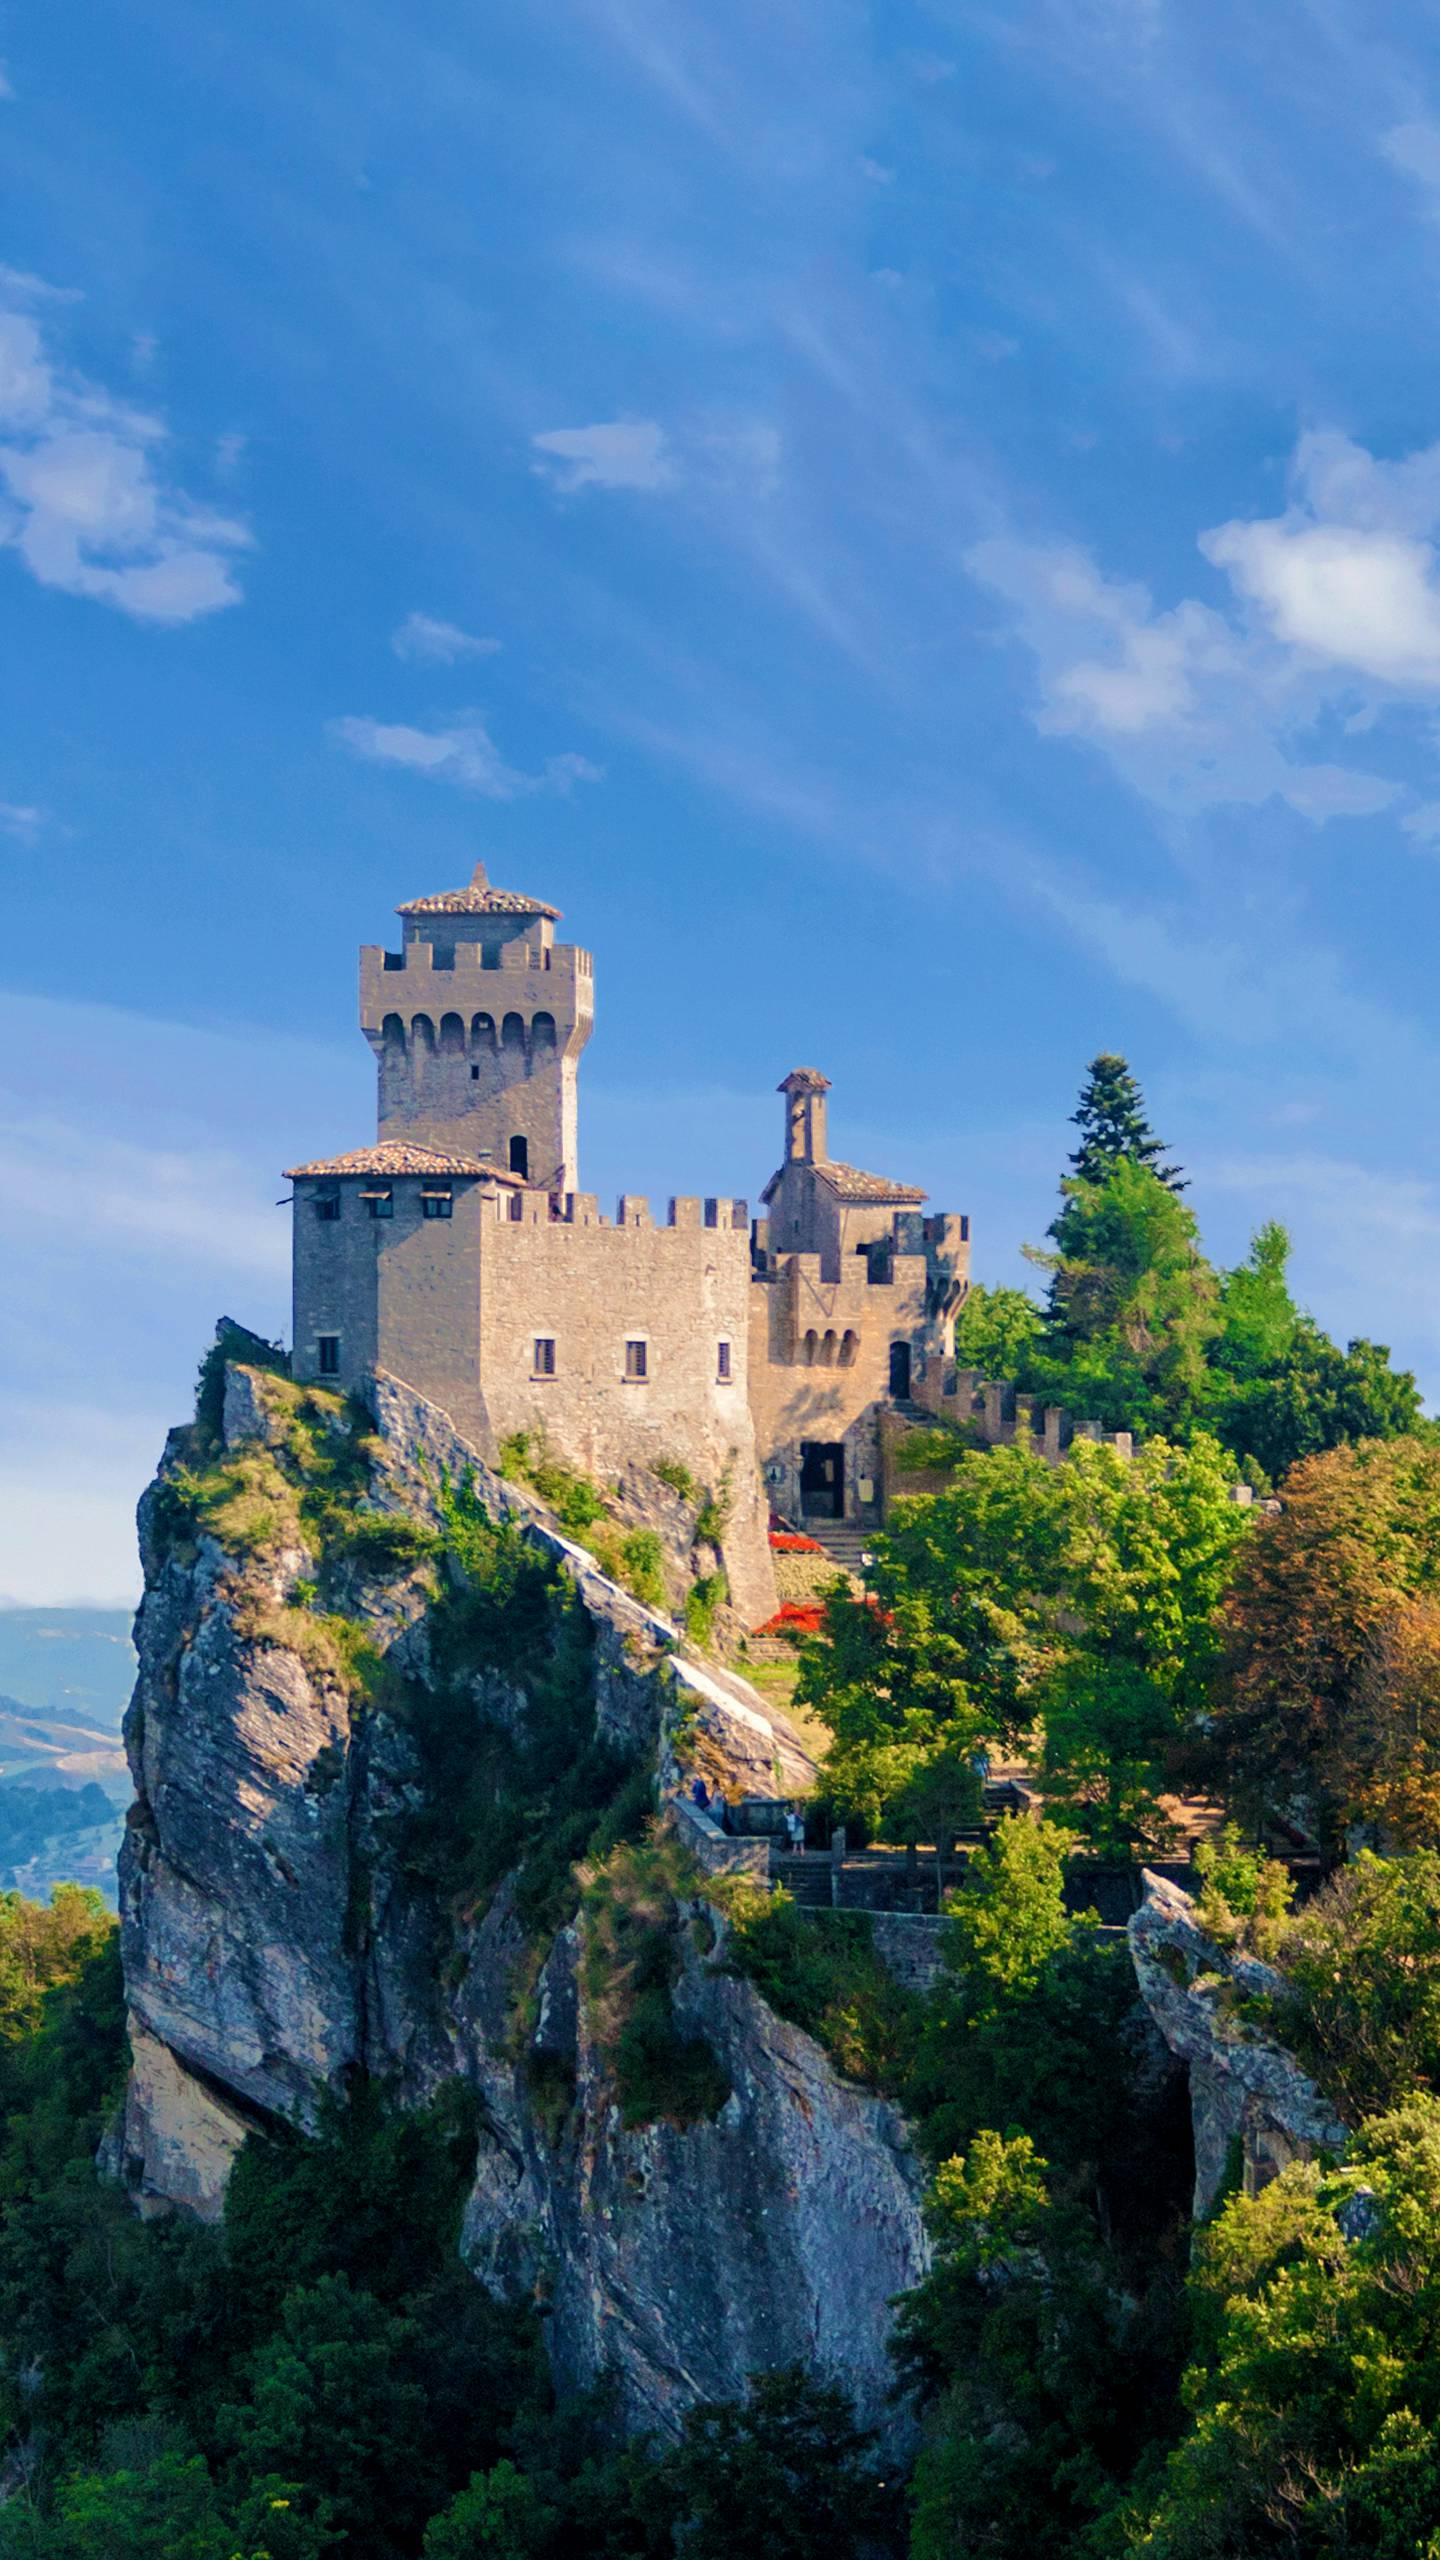 The country of the pockets of the mountains. San Marino is one of the most pocket-sized countries in the world, and the whole country is surrounded by Italy and belongs to the country of the country.